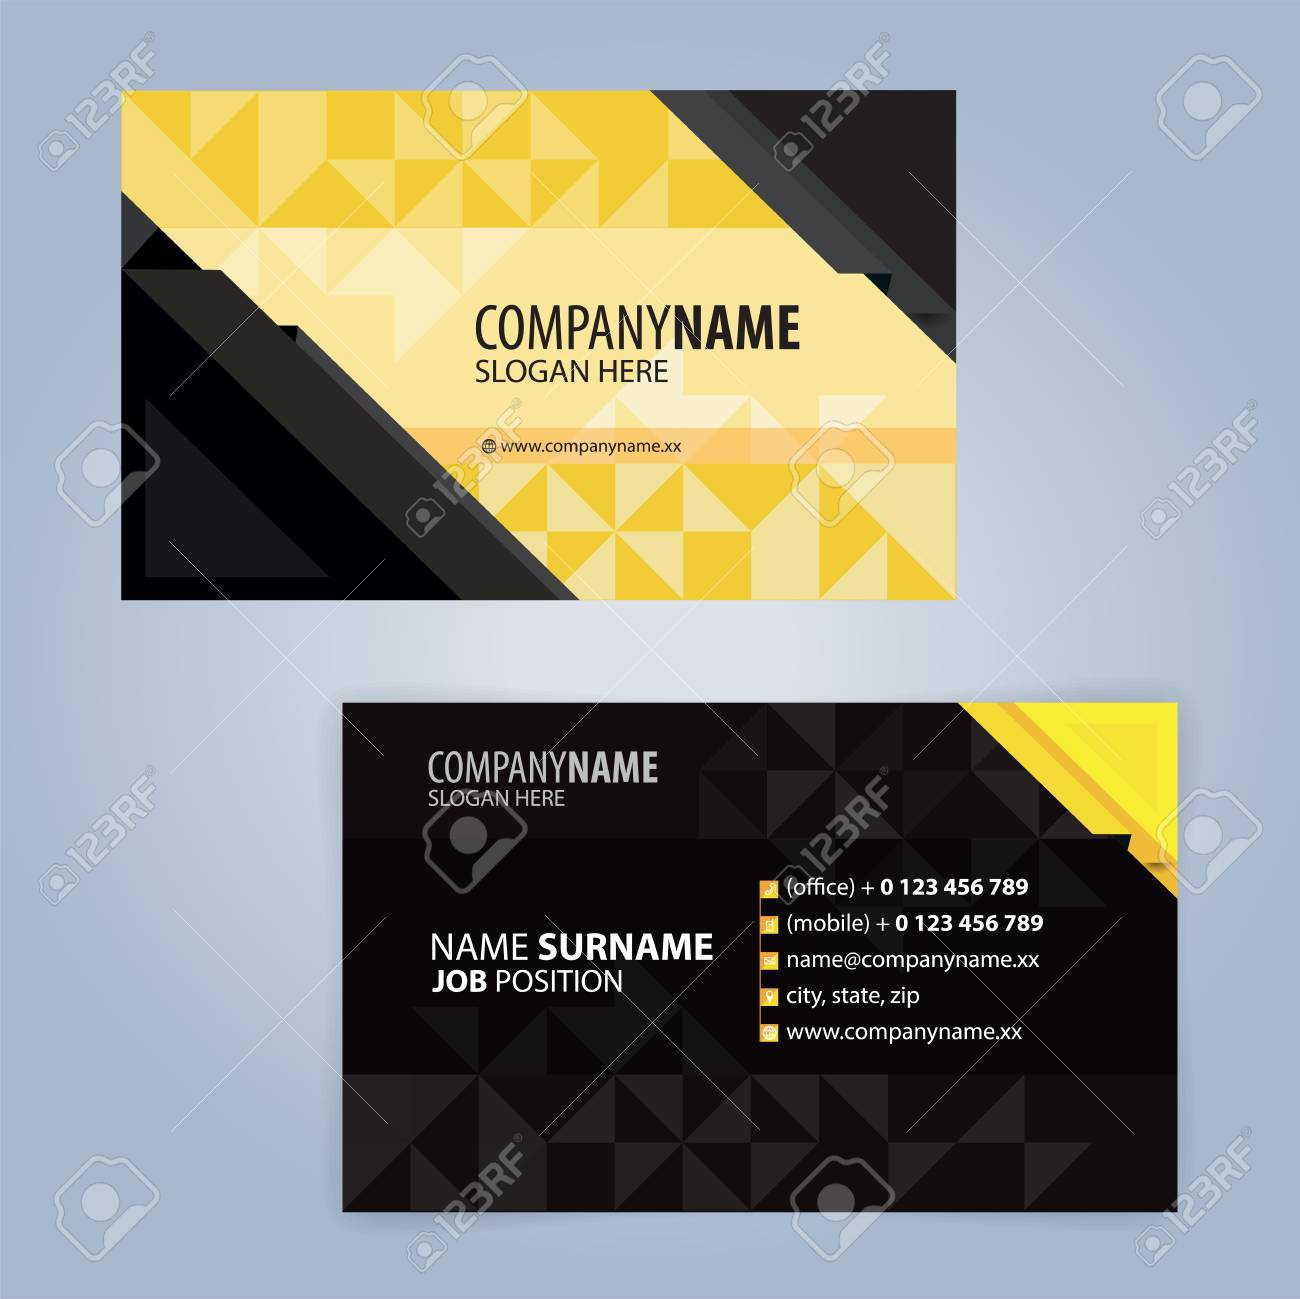 yellow and black modern business card template illustration